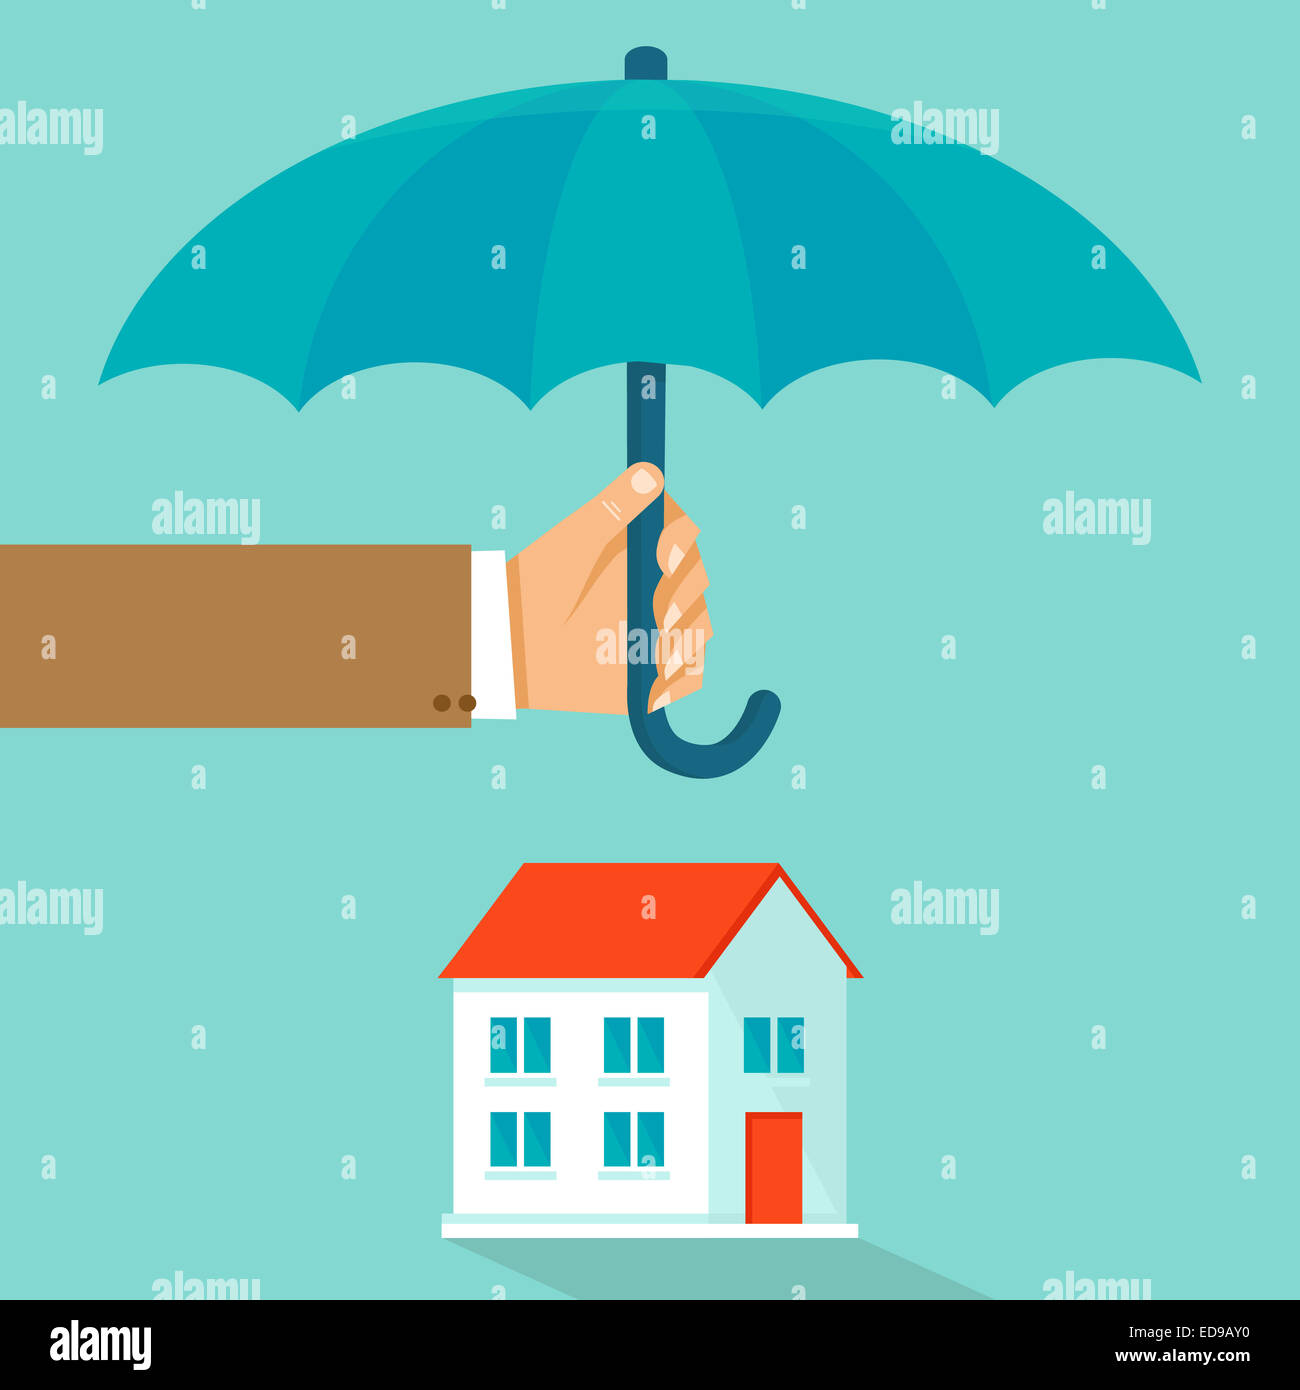 House insurance concept in flat style - infographic design elements and icons - agent's hand holding umbrella - Stock Image